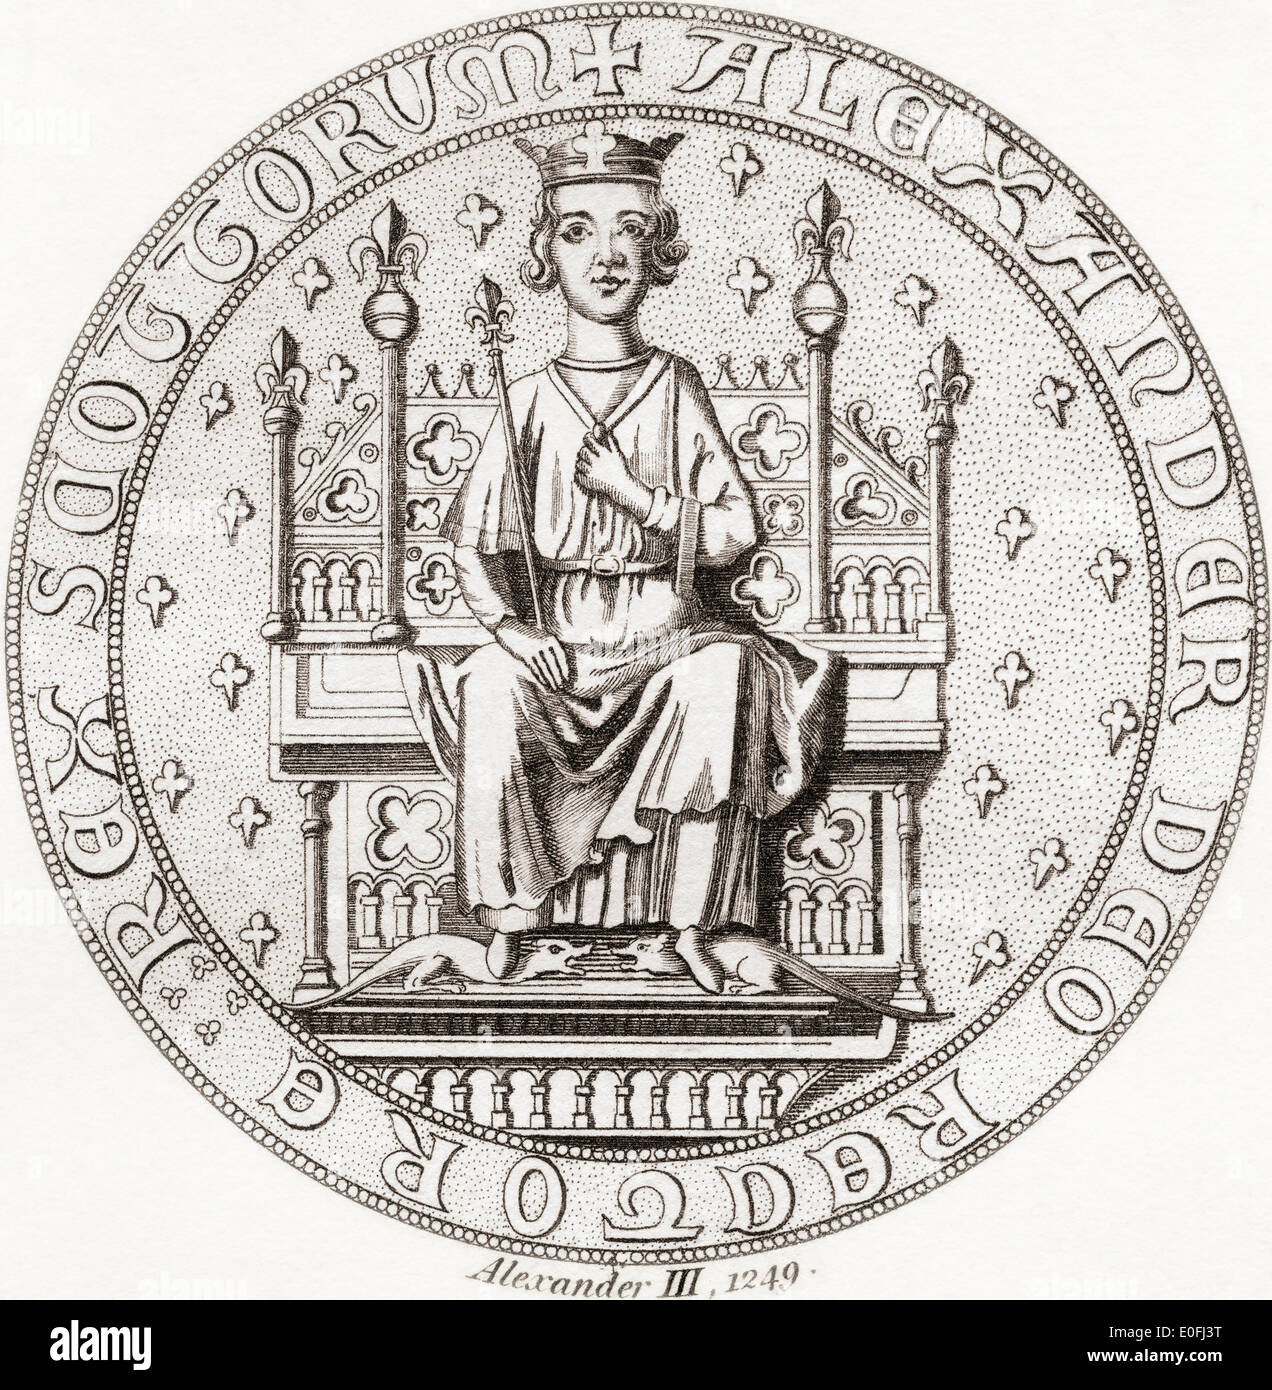 Seal of Alexander III, 1241 –1286. King of Scots. - Stock Image